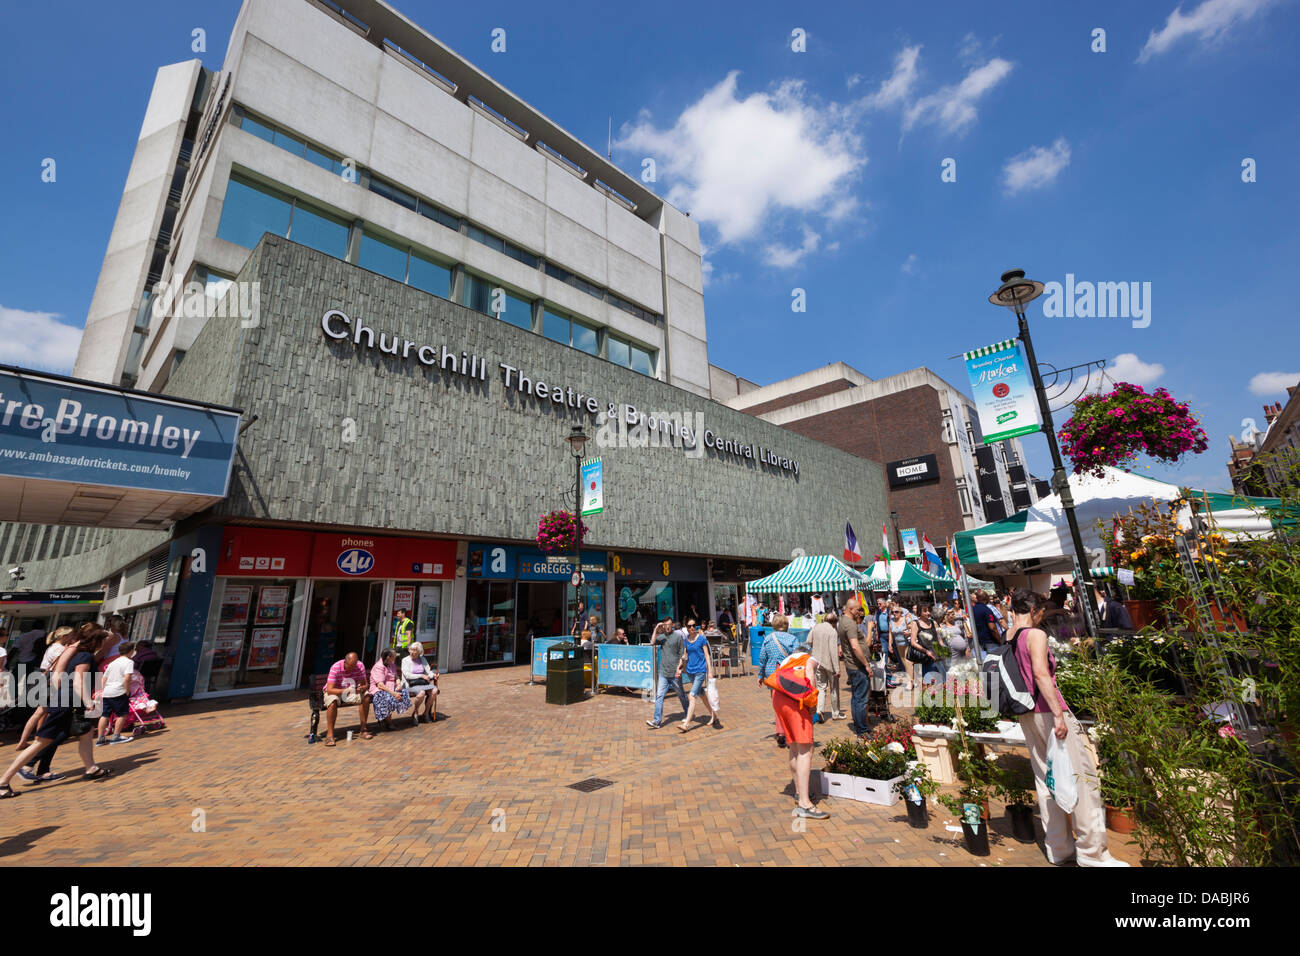 Churchill Theatre and Bromley Charter Market along the High Street - Stock Image